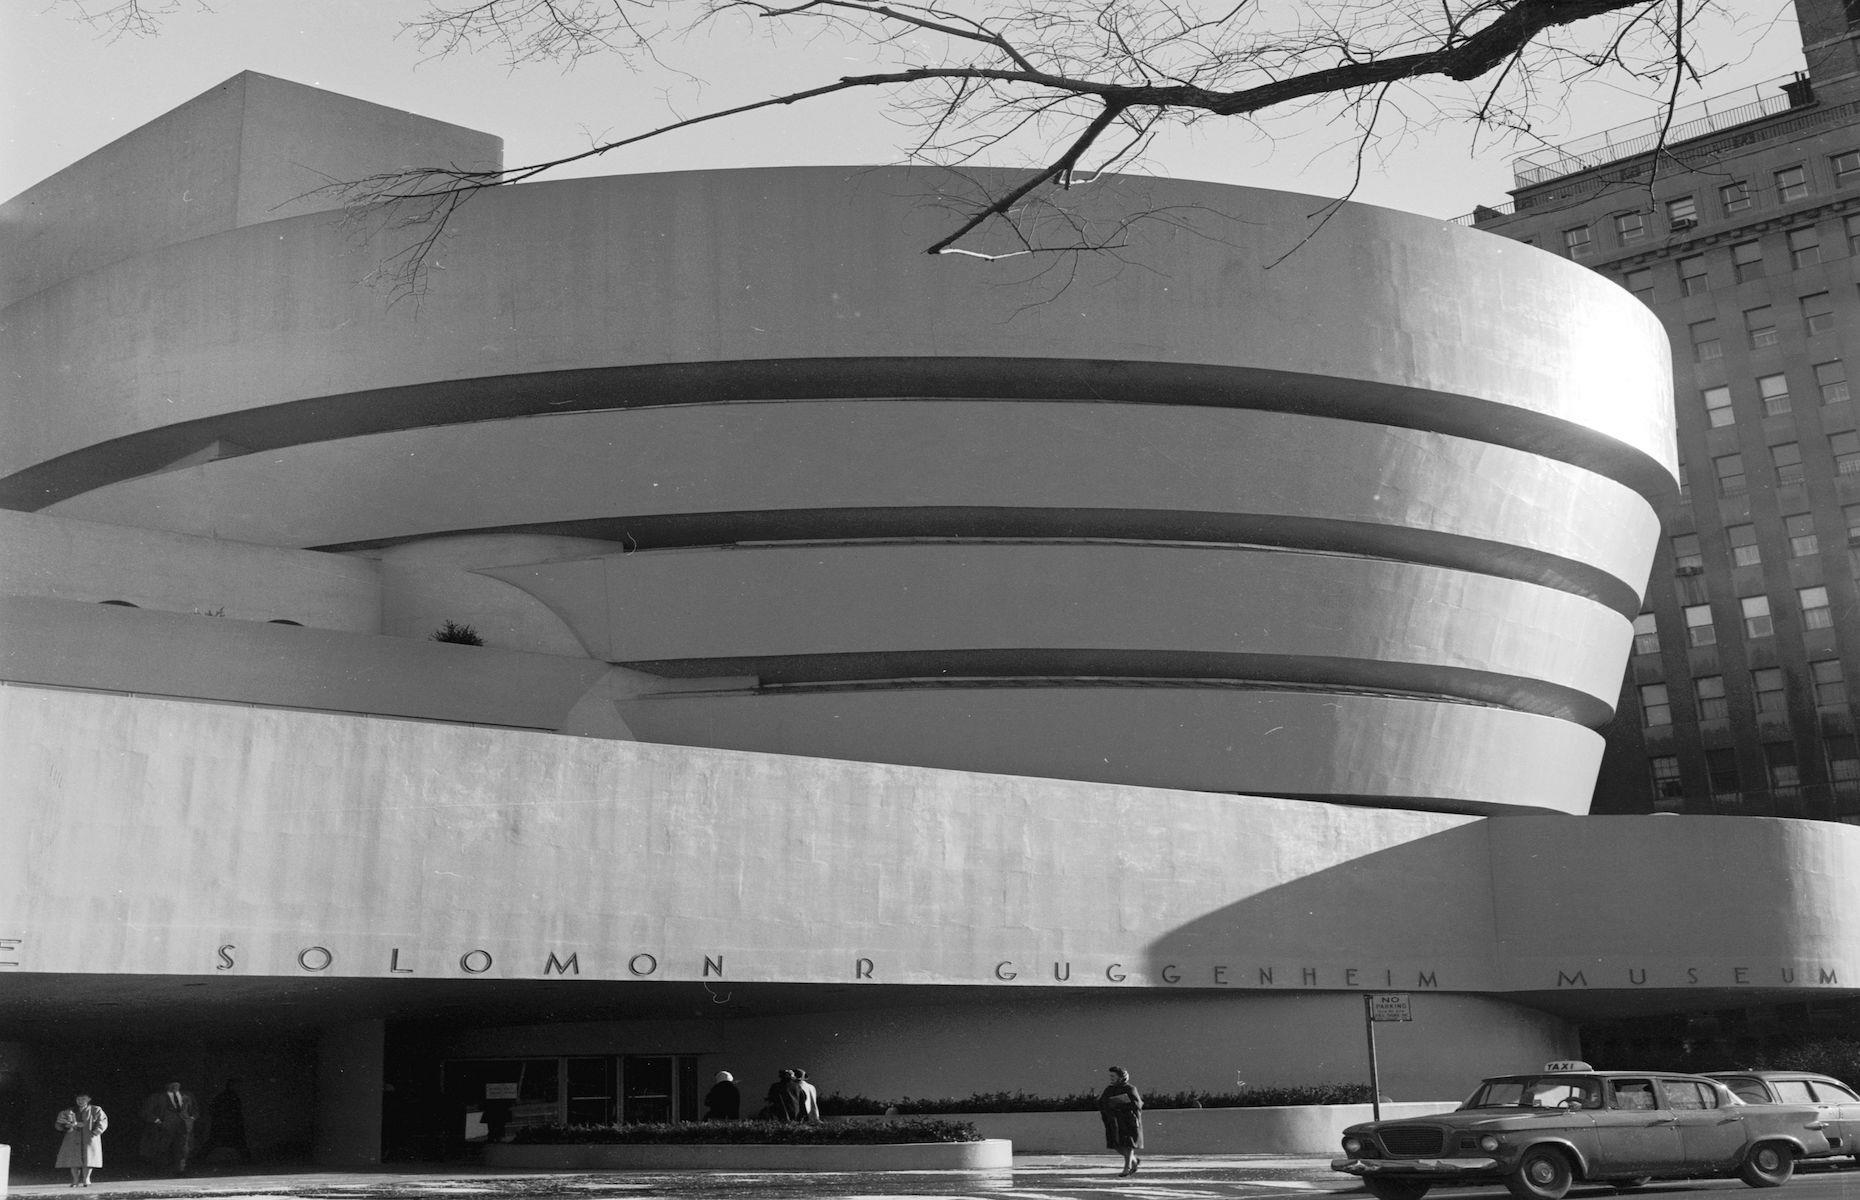 Slide 28 of 48: The Guggenheim Museum moved into its permanent home, the innovative Frank Lloyd Wright-designed building, in 1959. Originally founded in 1939 by the Solomon R. Guggenheim Foundation to house the businessman and art collector's pieces, it was renamed the Solomon R. Guggenheim Museum in 1952. The modern art gallery, located on the corner of Fifth Avenue and East 89th Street, became one of the most significant architectural icons and cultural spaces of the 20th century.